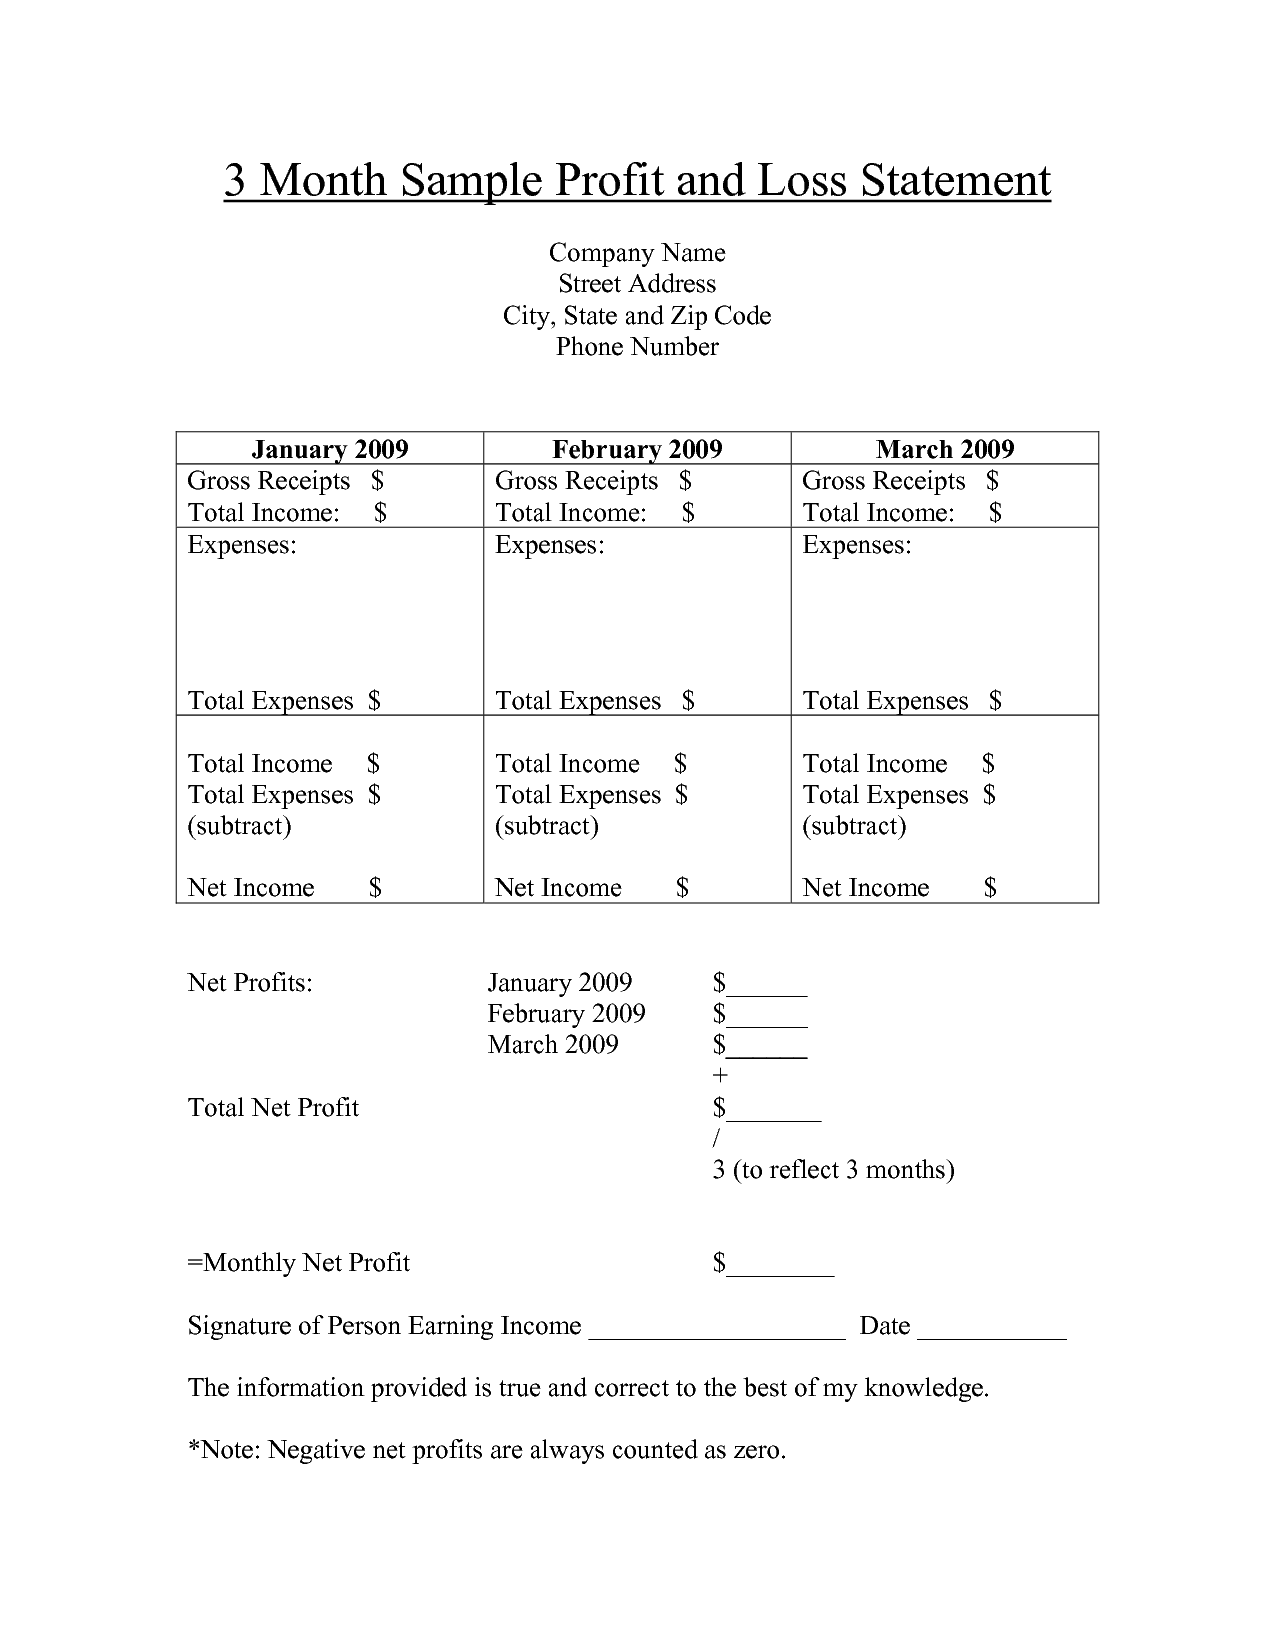 Profit And Loss Statement Form Free Free Printable Profit And Loss Statement Form For Home Care  Bing .